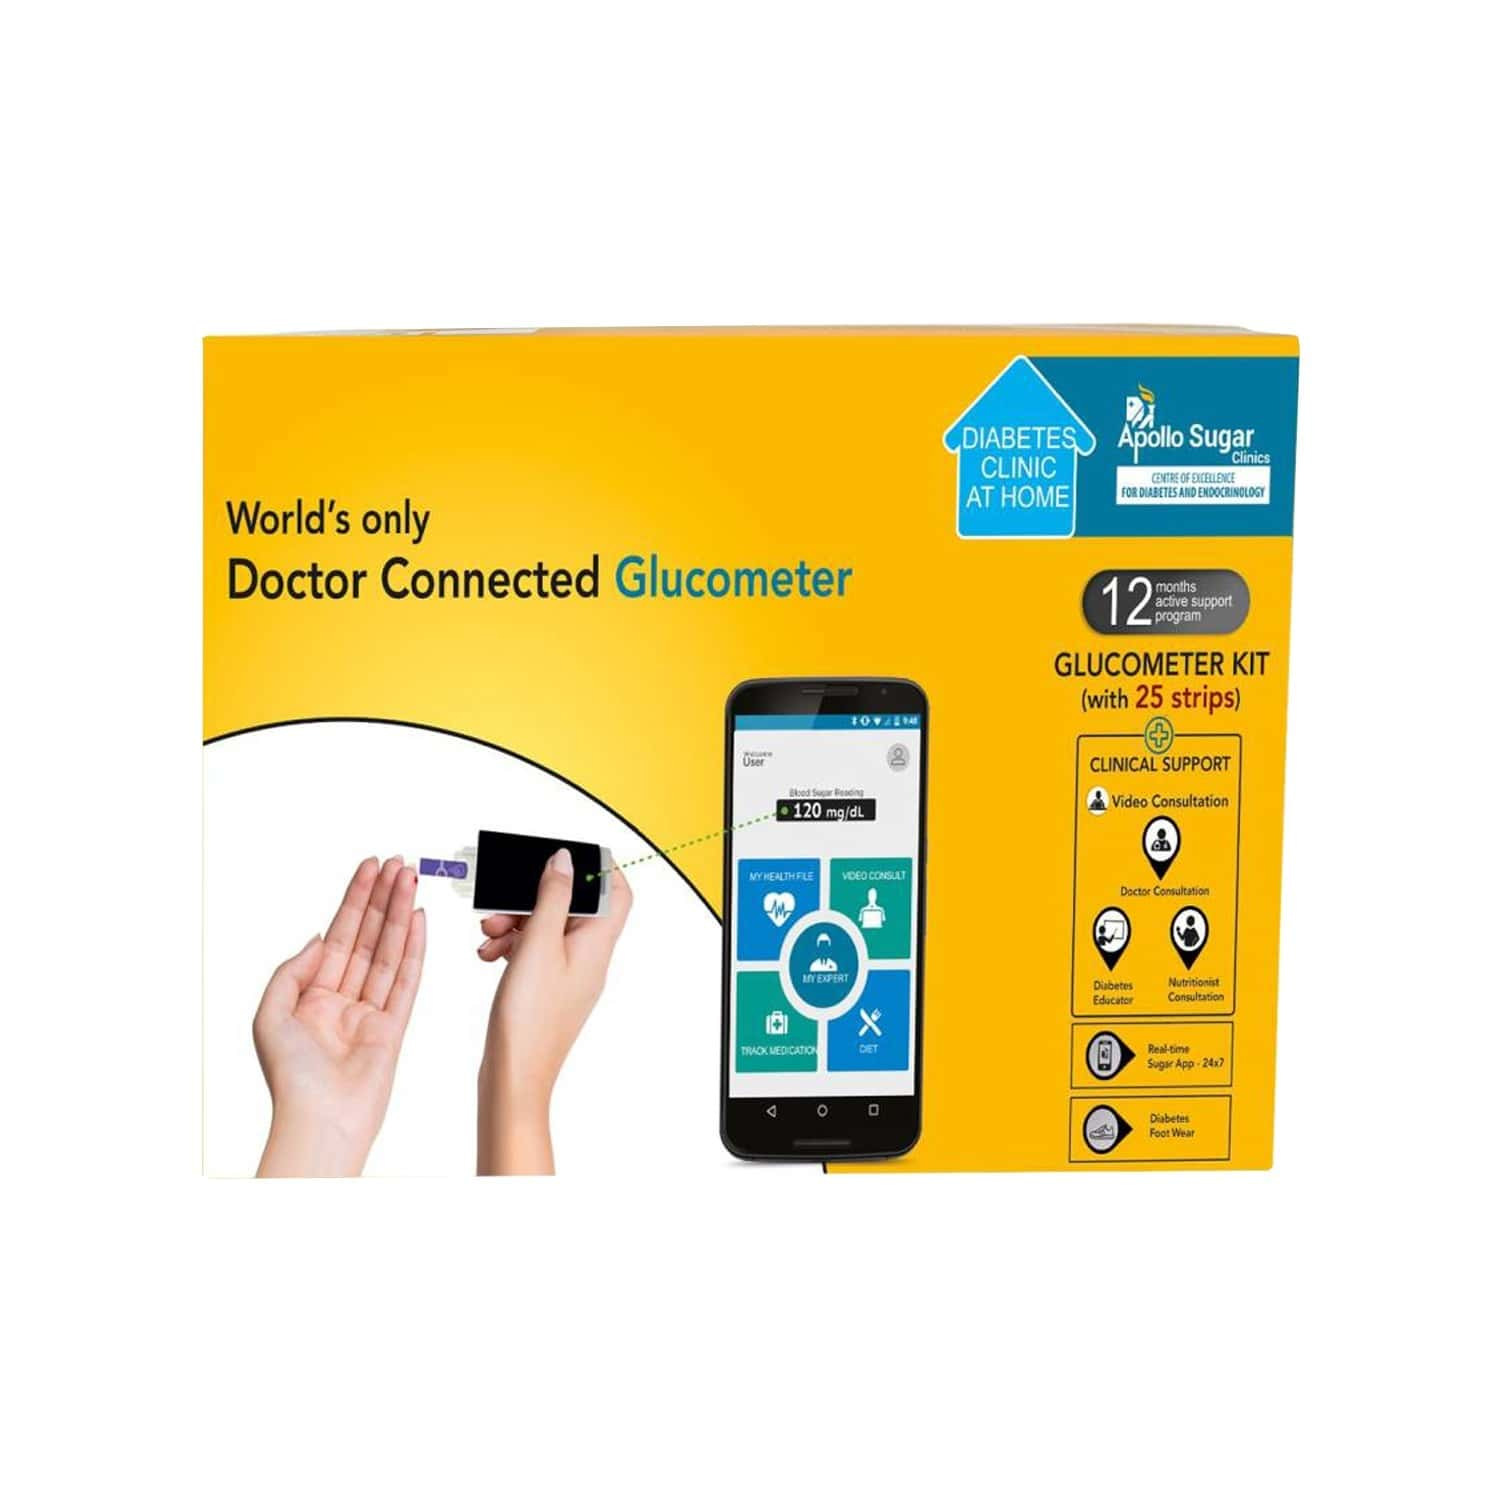 Apollo Sugar Smart Glucometer Premium Home Care Kit + Free Pair Of Health Socks & Video Consultation With Diabetic Experts